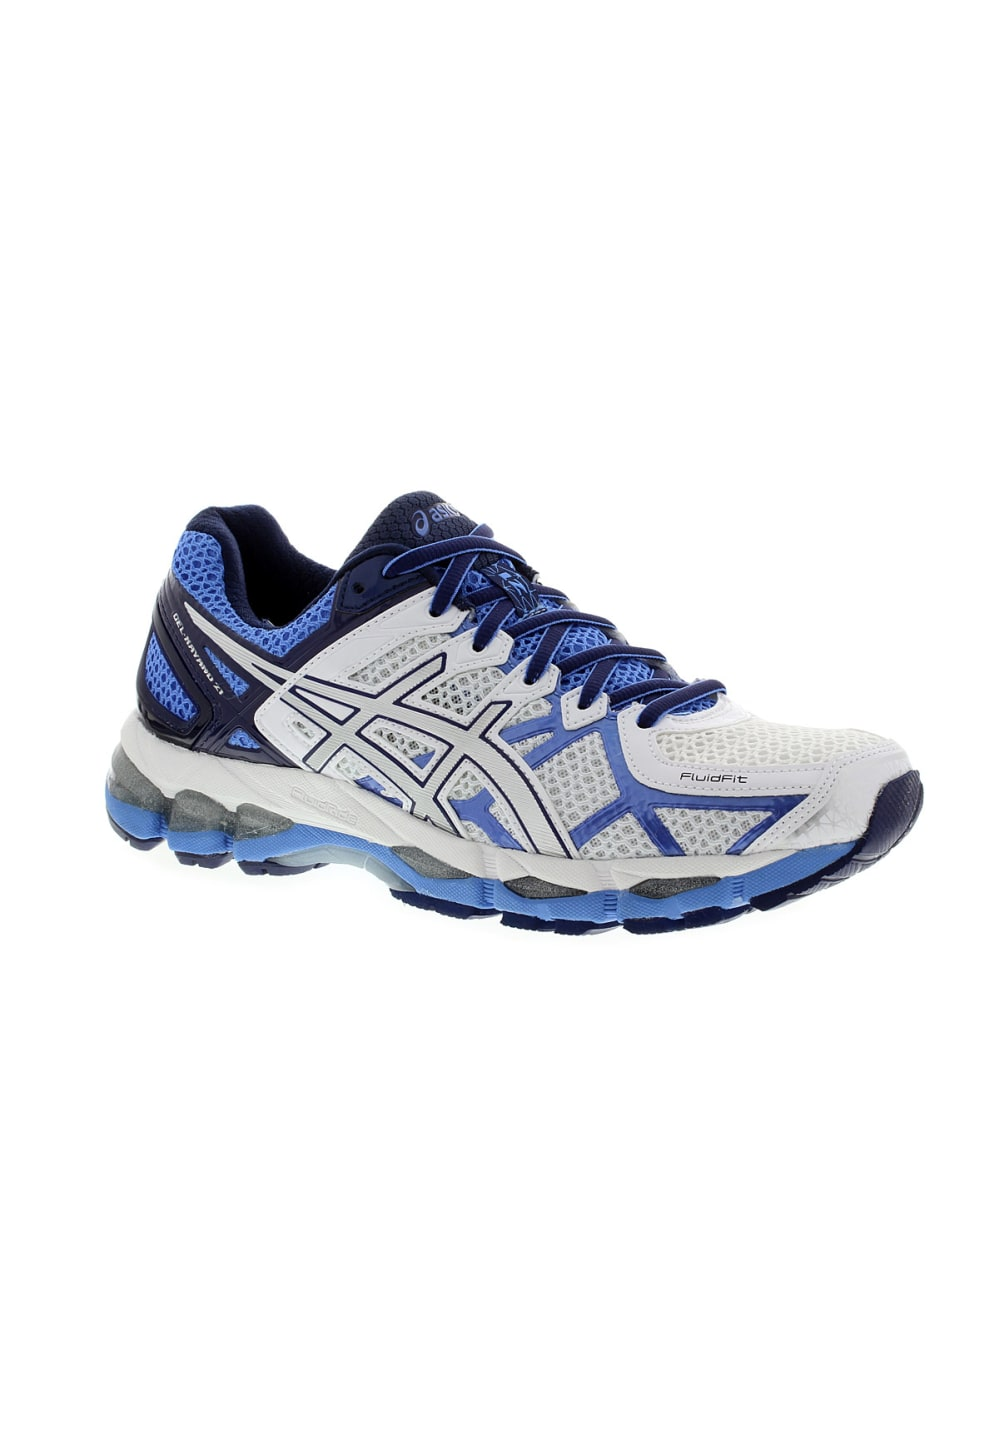 641cf760c2e ASICS GEL-Kayano 21 - Running shoes for Women - White